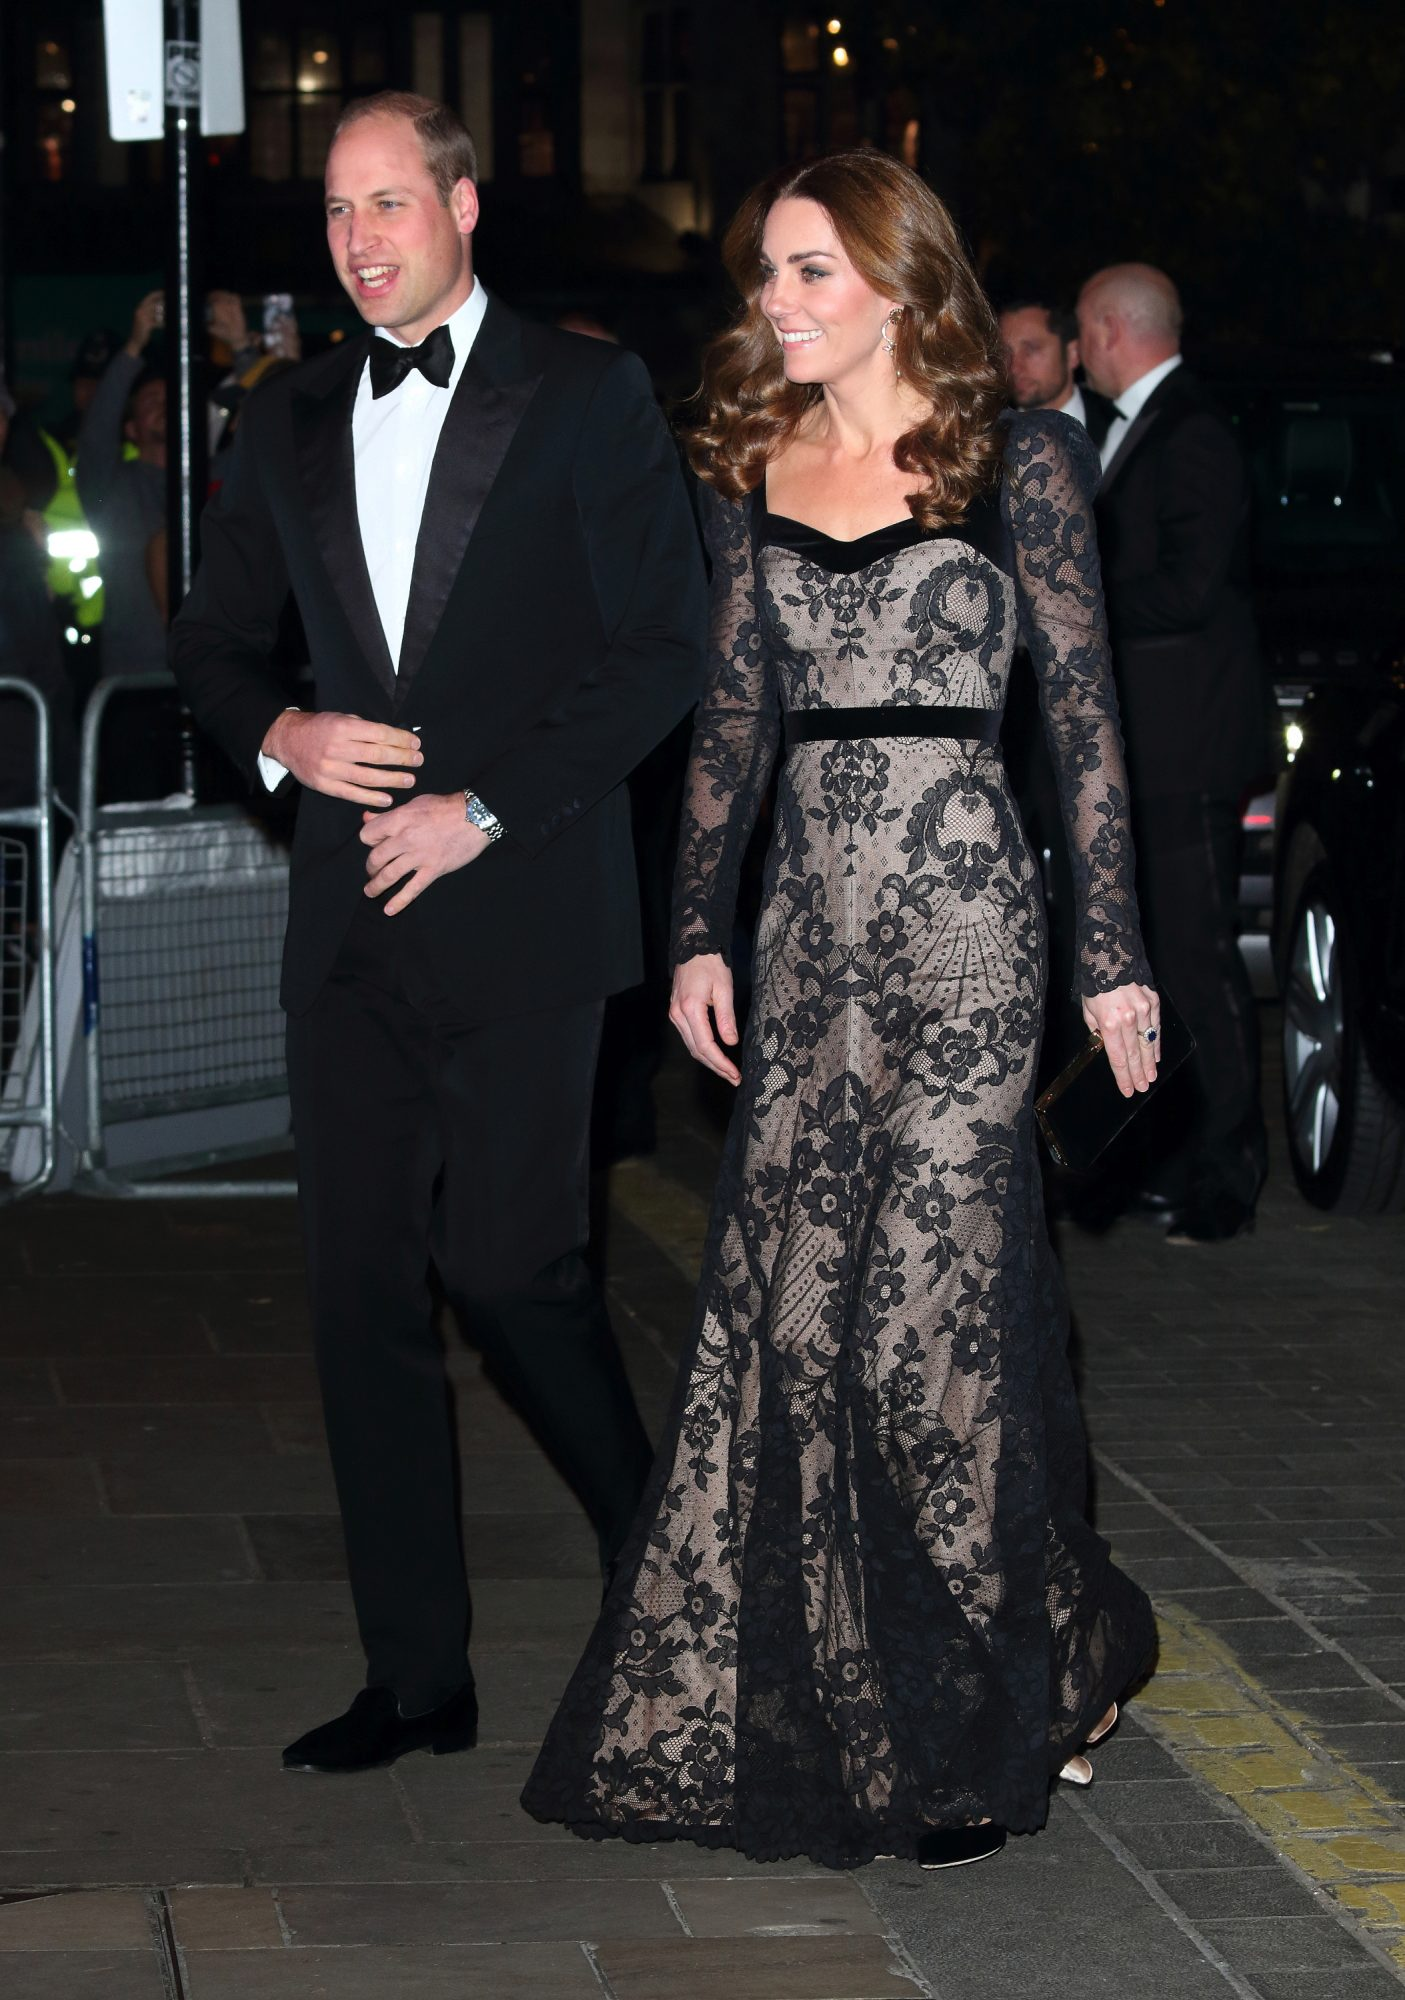 Prince William and Kate Middleton at Royal Variety Performance